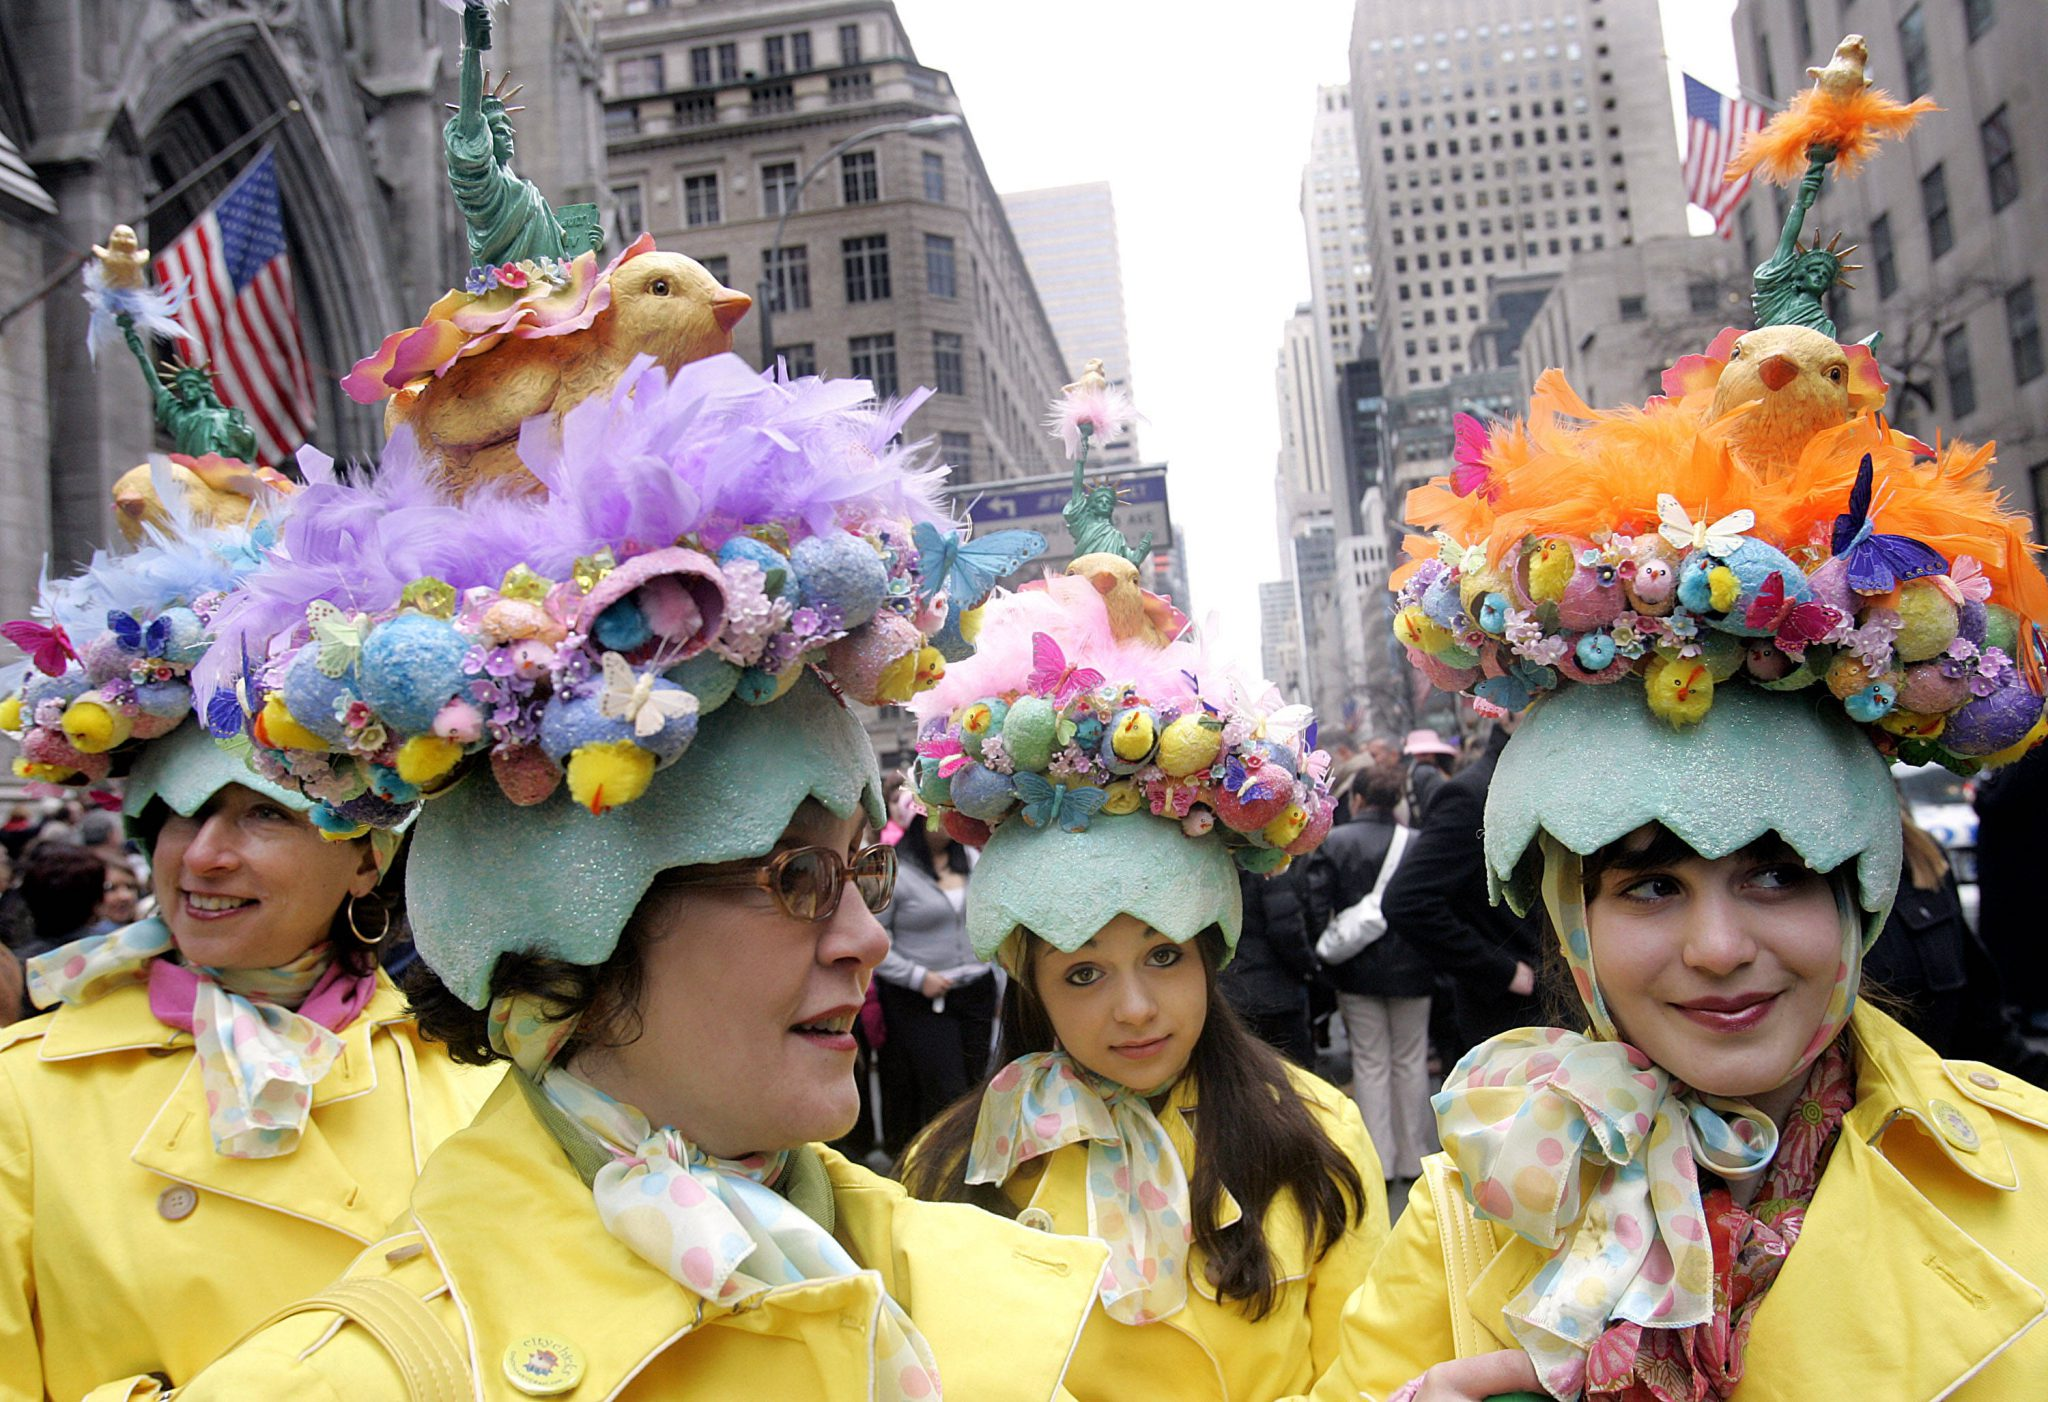 New Yorkers Show Off Their Finery At Annual Easter Parade: NEW YORK - MARCH 27:  A group of women known as